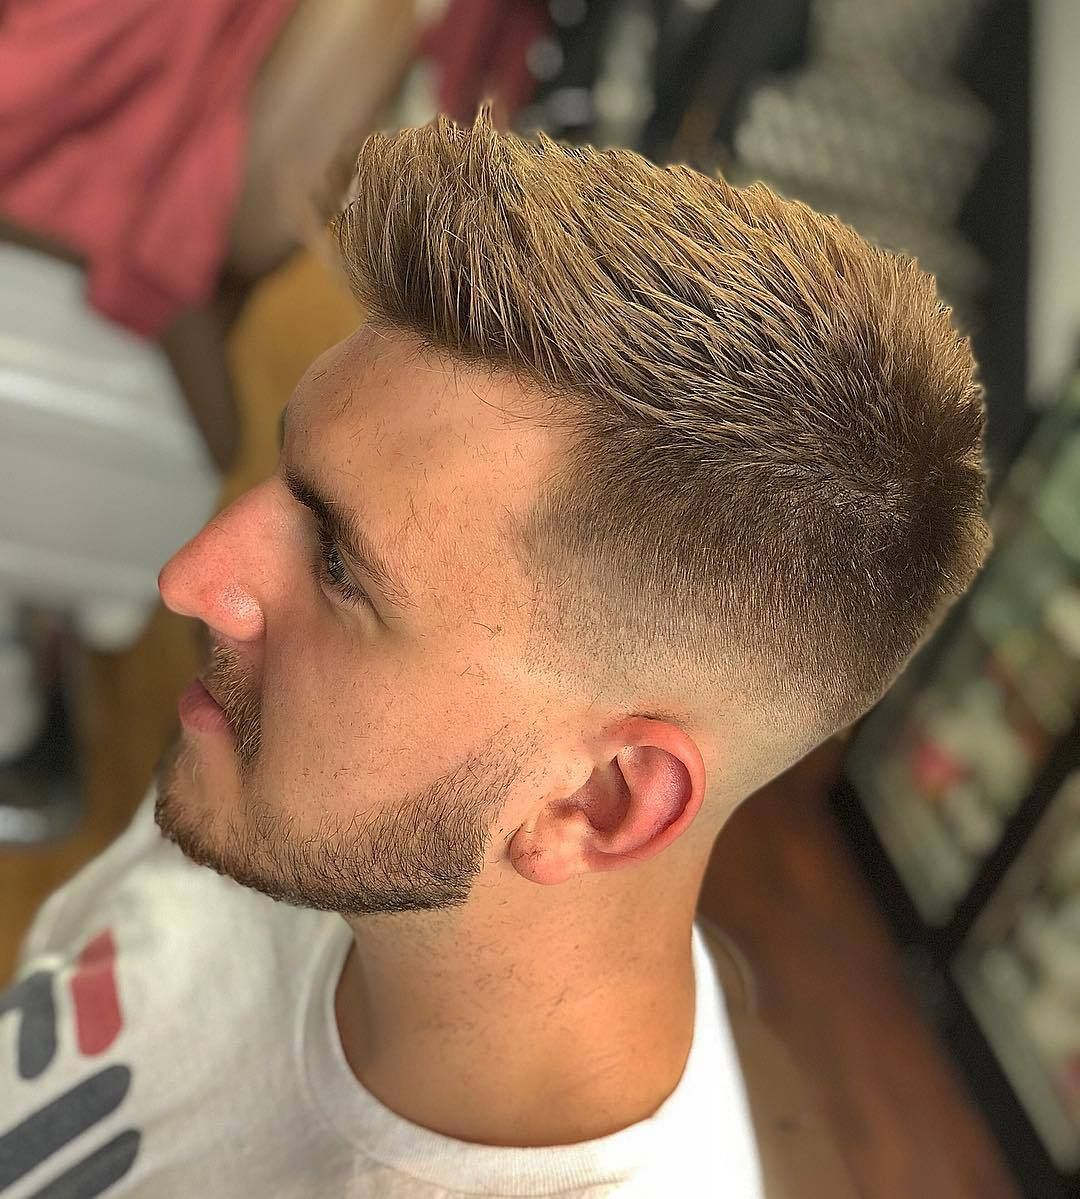 Dutchwim Barber Barberlife Barbergang Plymouthbarber Devonbarber Barbering Menshair Barberlove Mens Hairstyles Short Very Short Hair Cool Haircuts